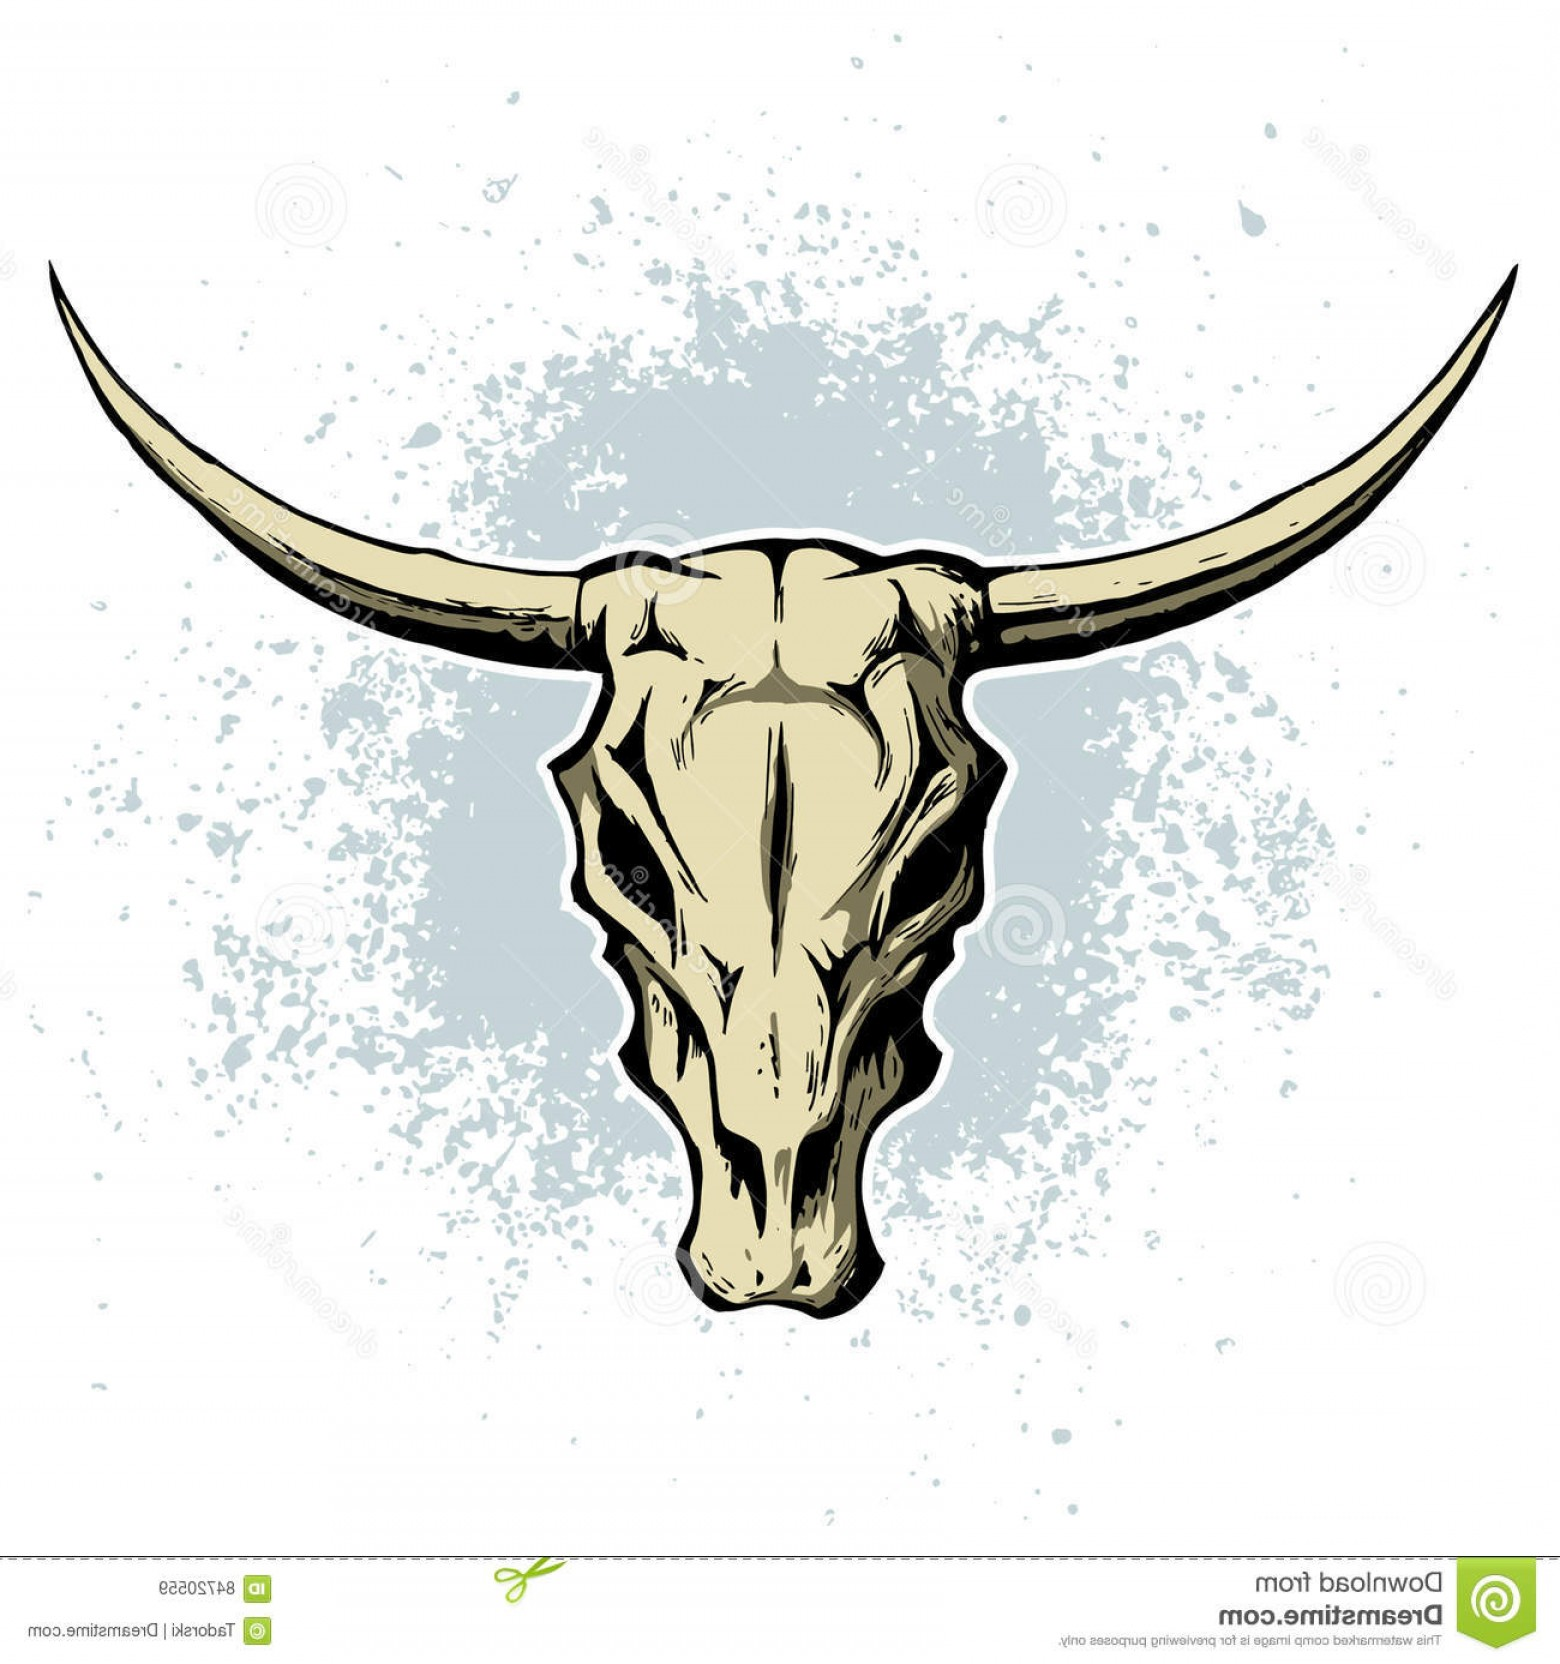 Longhorn Skull Vector: Stock Illustration Vector Bull Cow Skull Horns Texas Themed Logo Image